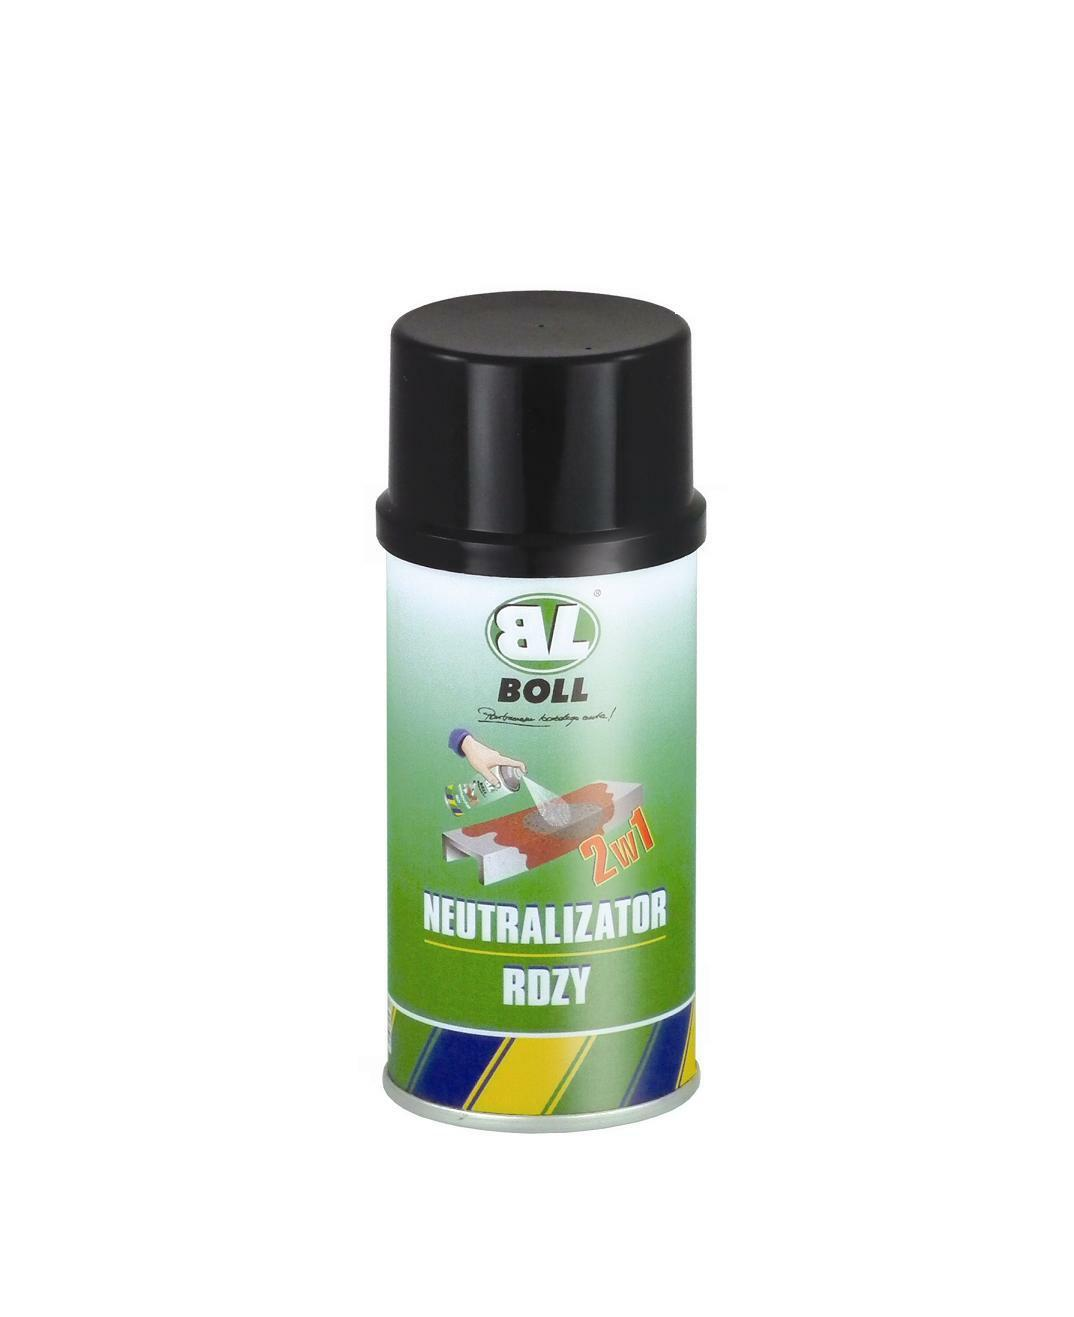 BOLL neutralizator rdzy - spray 150 ml